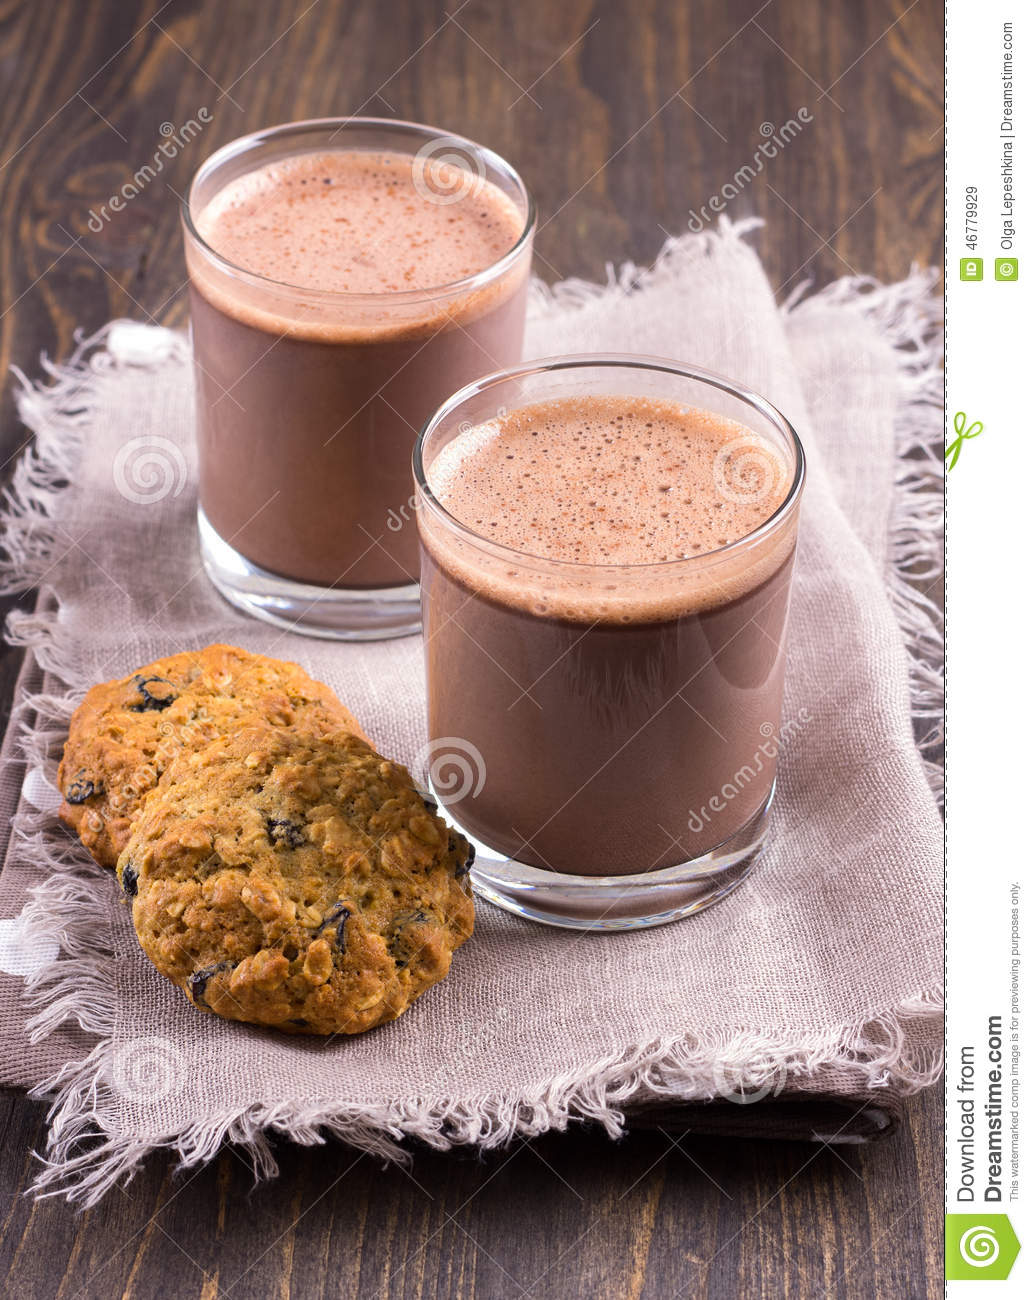 Chocolate Milk With Diet Oatmeal Cookies Stock Photo - Image: 46779929